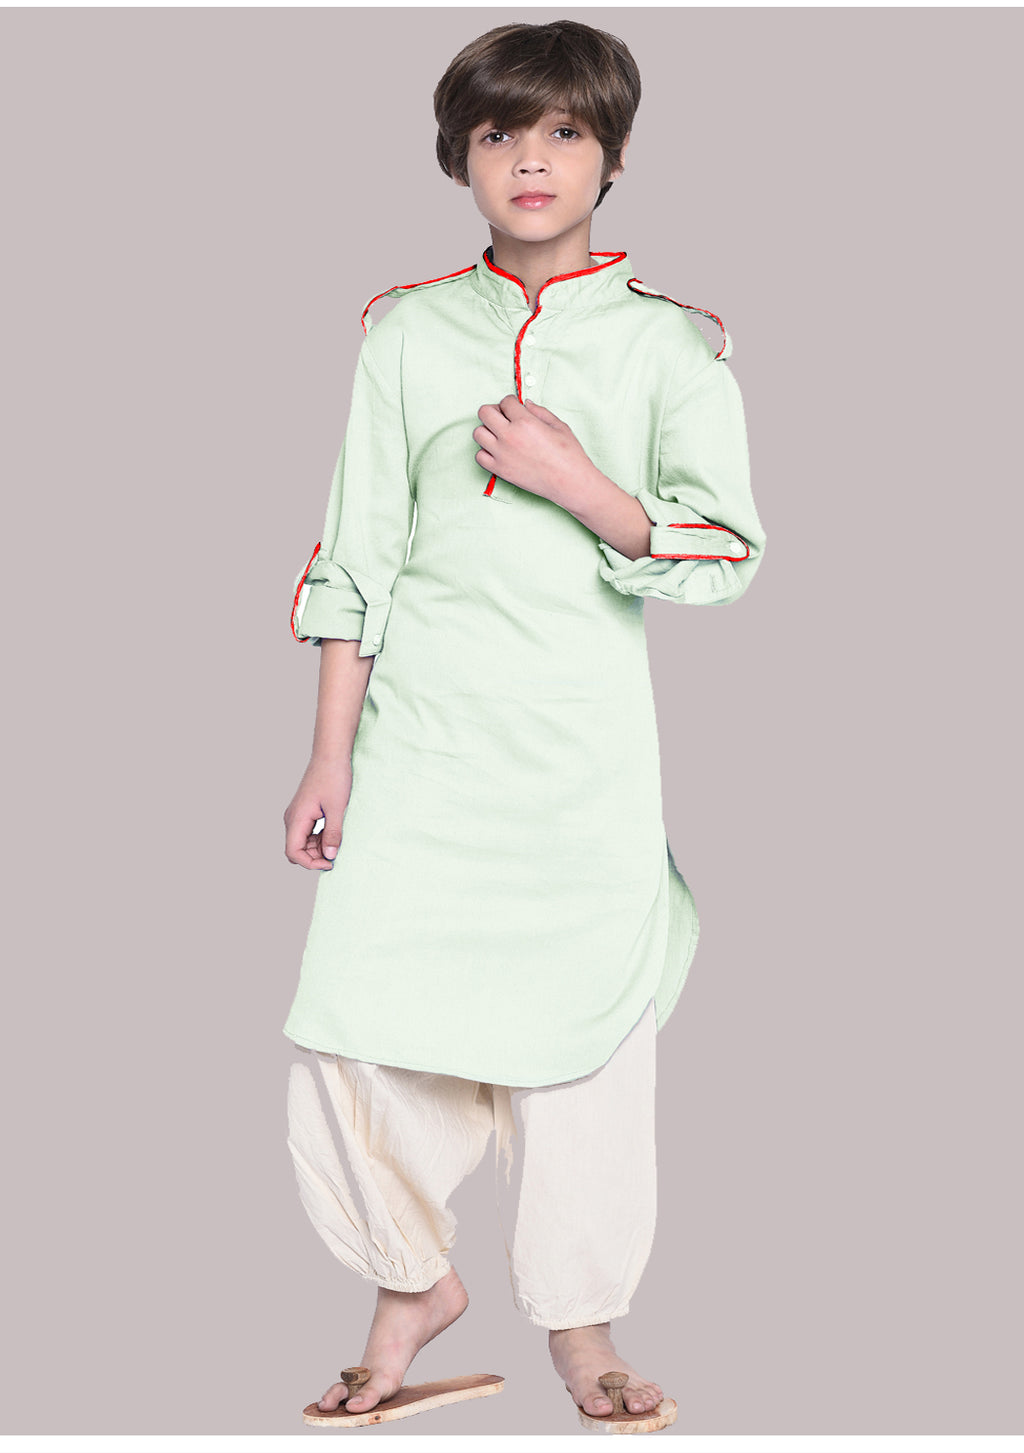 William Light Green Kurta Pajam Set For Boys